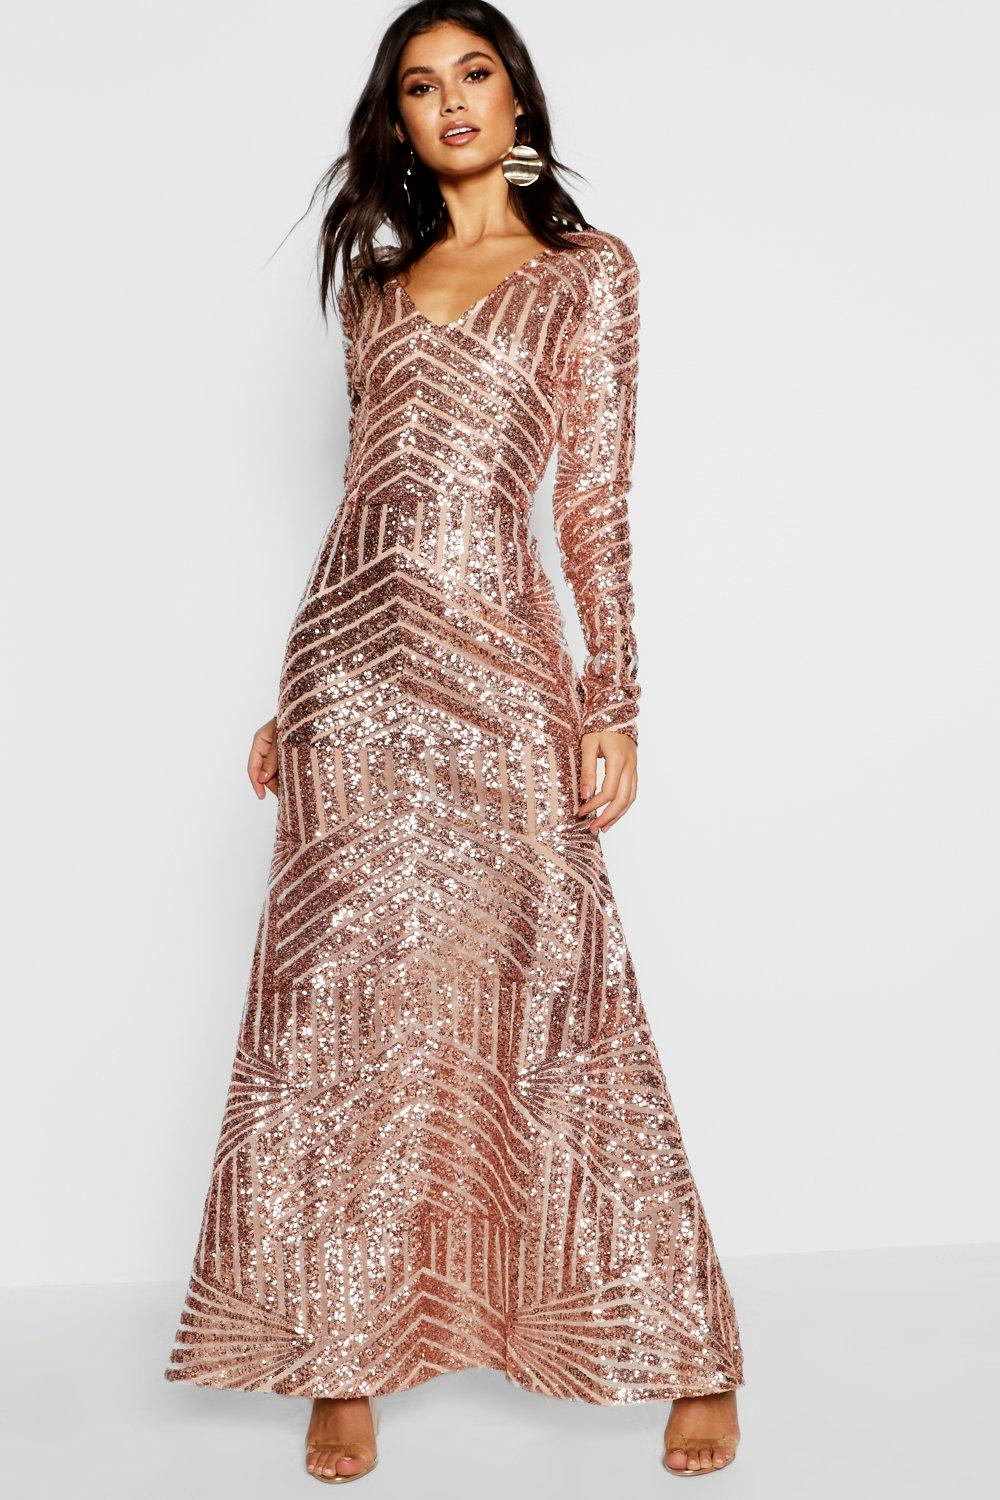 boohoo Boutique Mia Sequin  Mesh Plunge Neck Maxi Dress - nude $70.00 AT vintagedancer.com